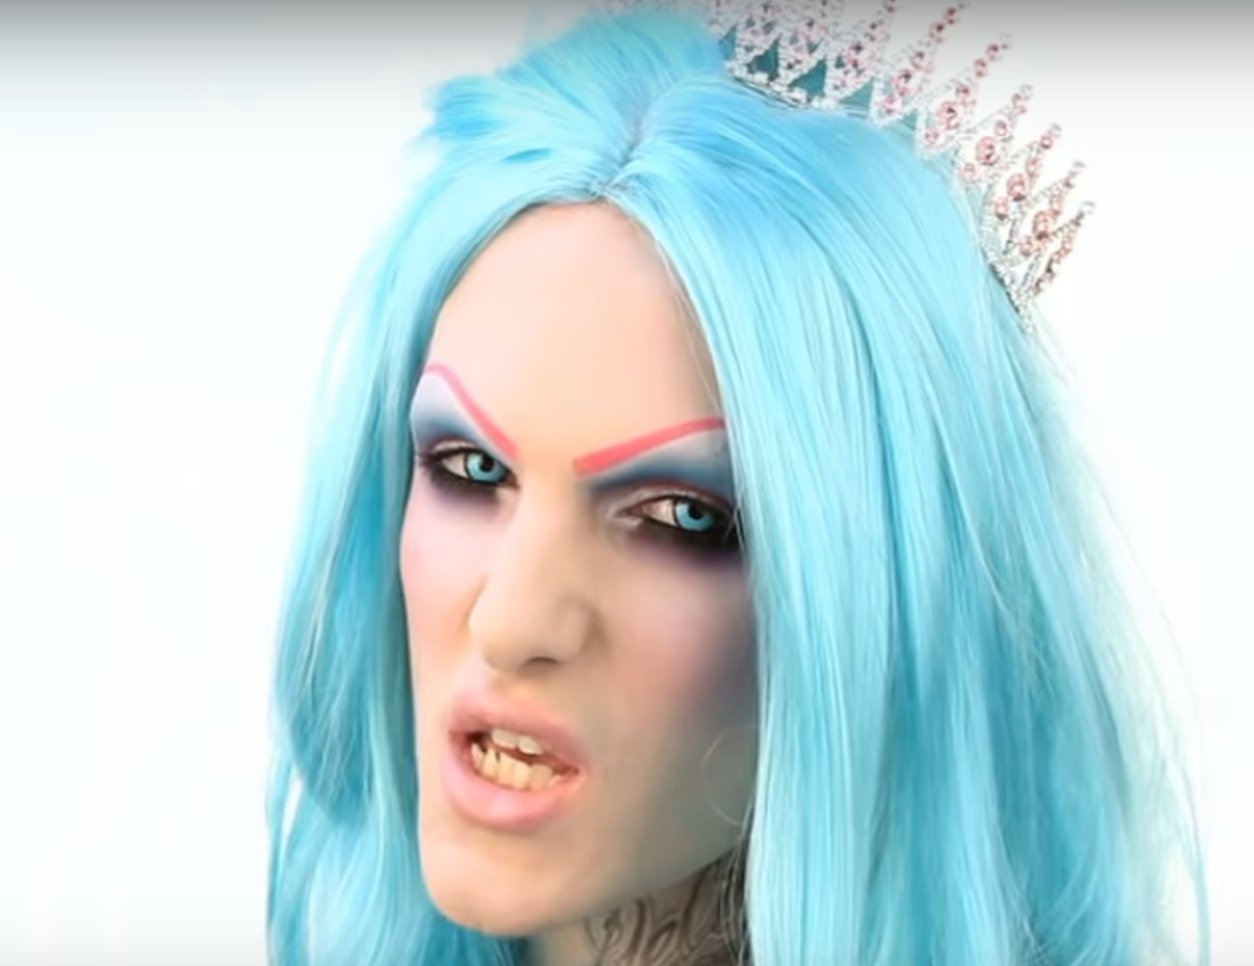 jeffree star with his old teeth